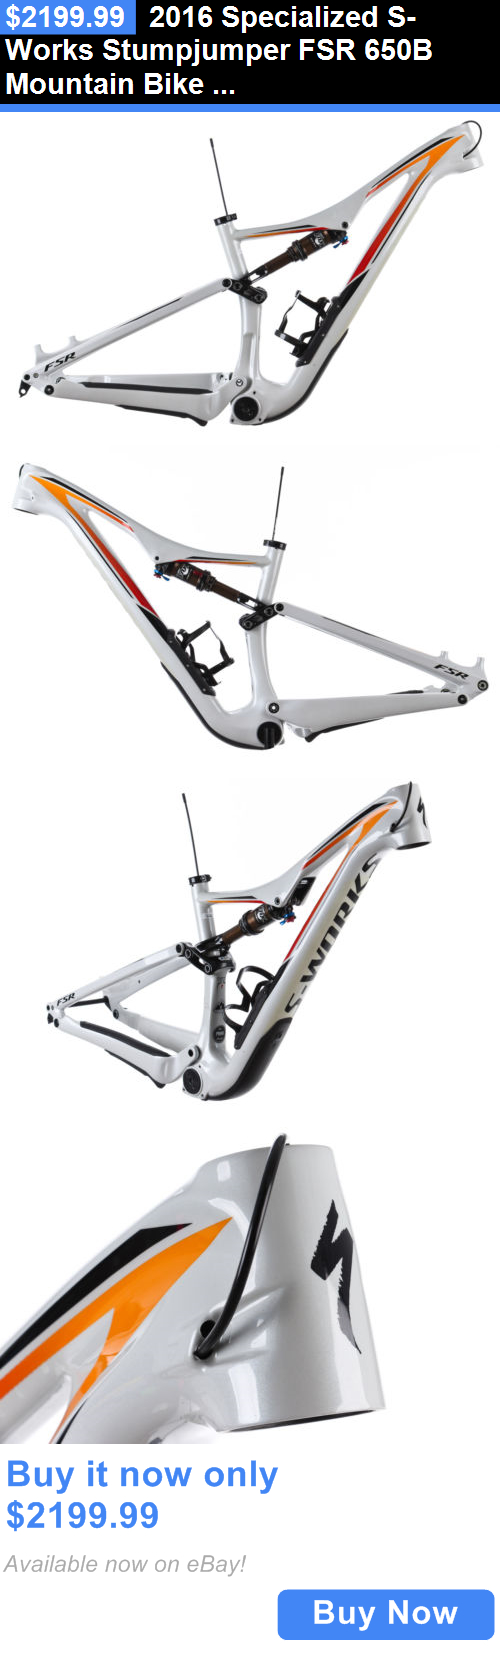 bicycle parts: 2016 Specialized S-Works Stumpjumper Fsr 650B ...